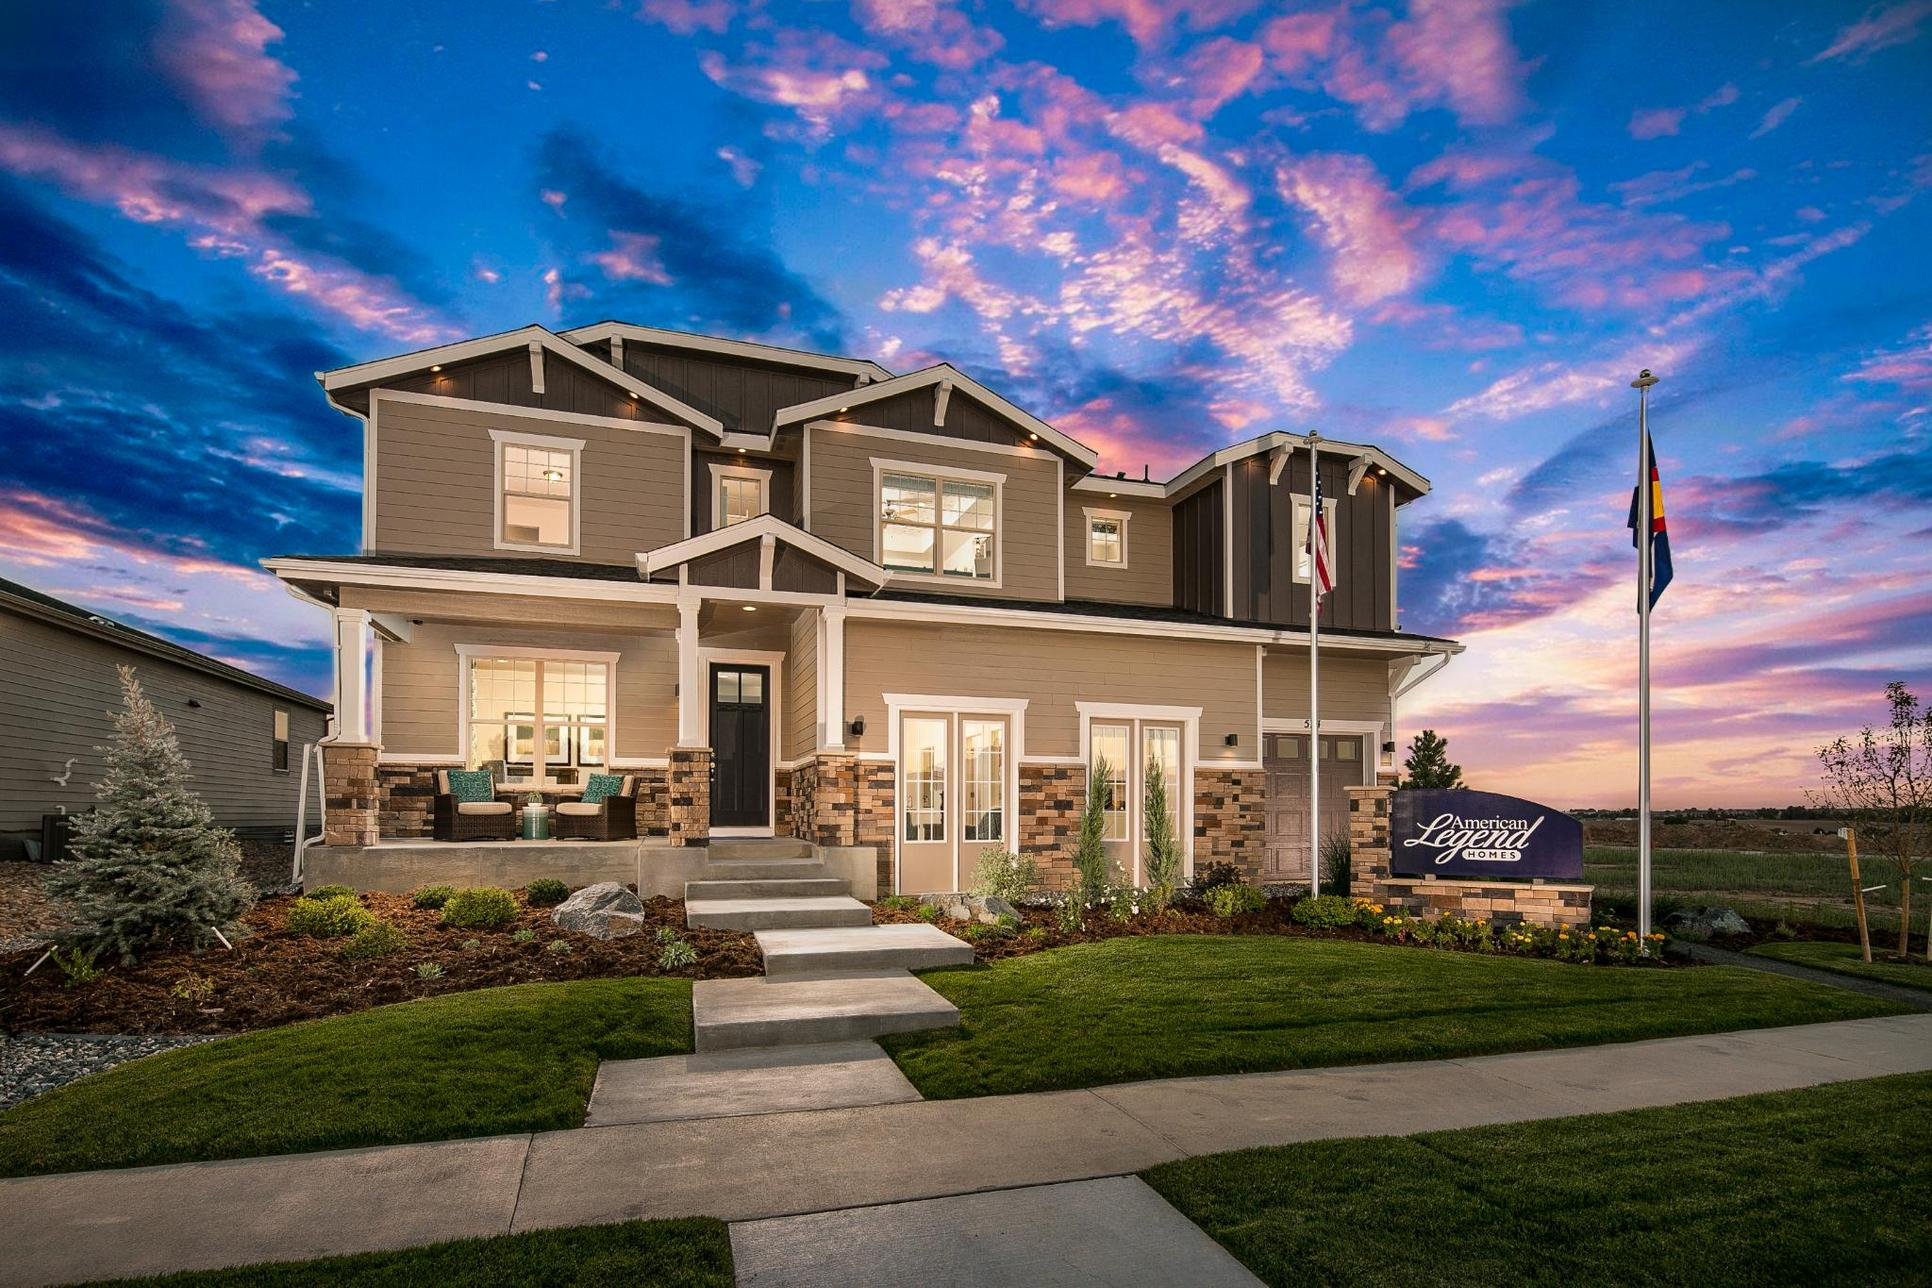 Heritage Ridge Plan C505 Twilight Photo Front Elevation by American Legend Homes